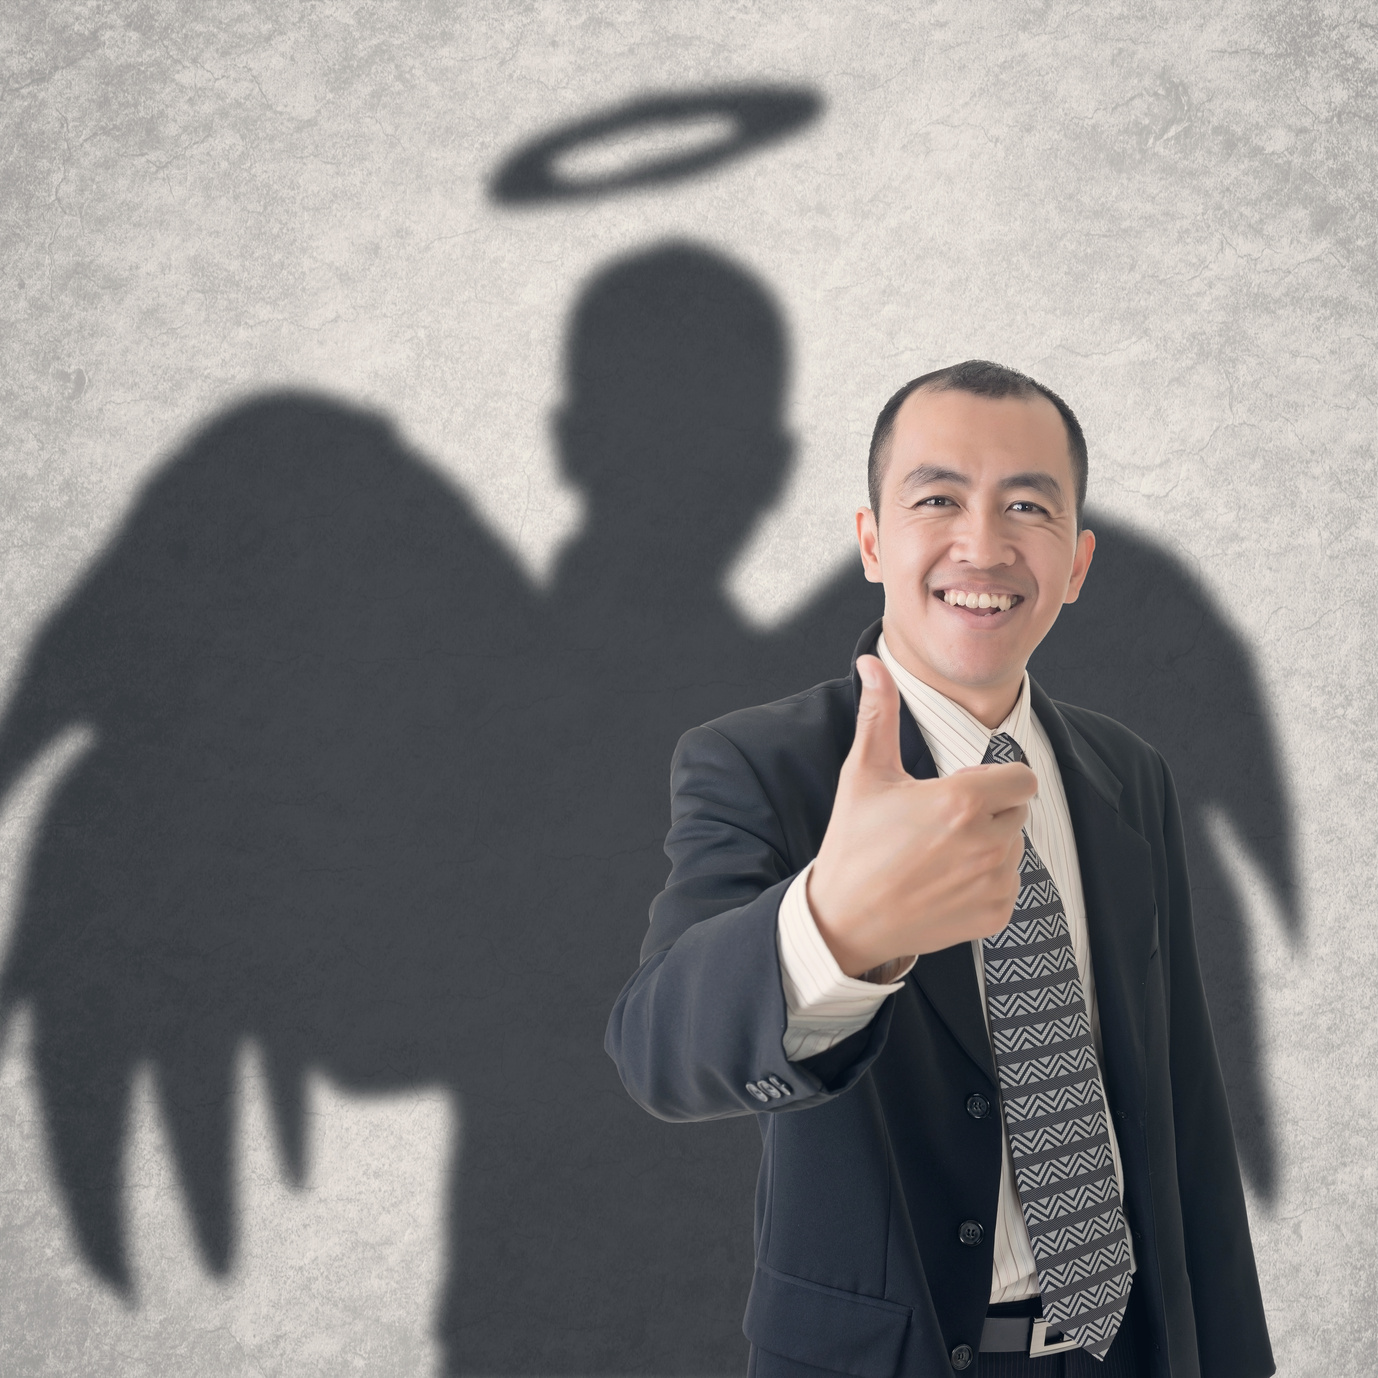 Getting Your Online Business off the Ground without Angel Investors